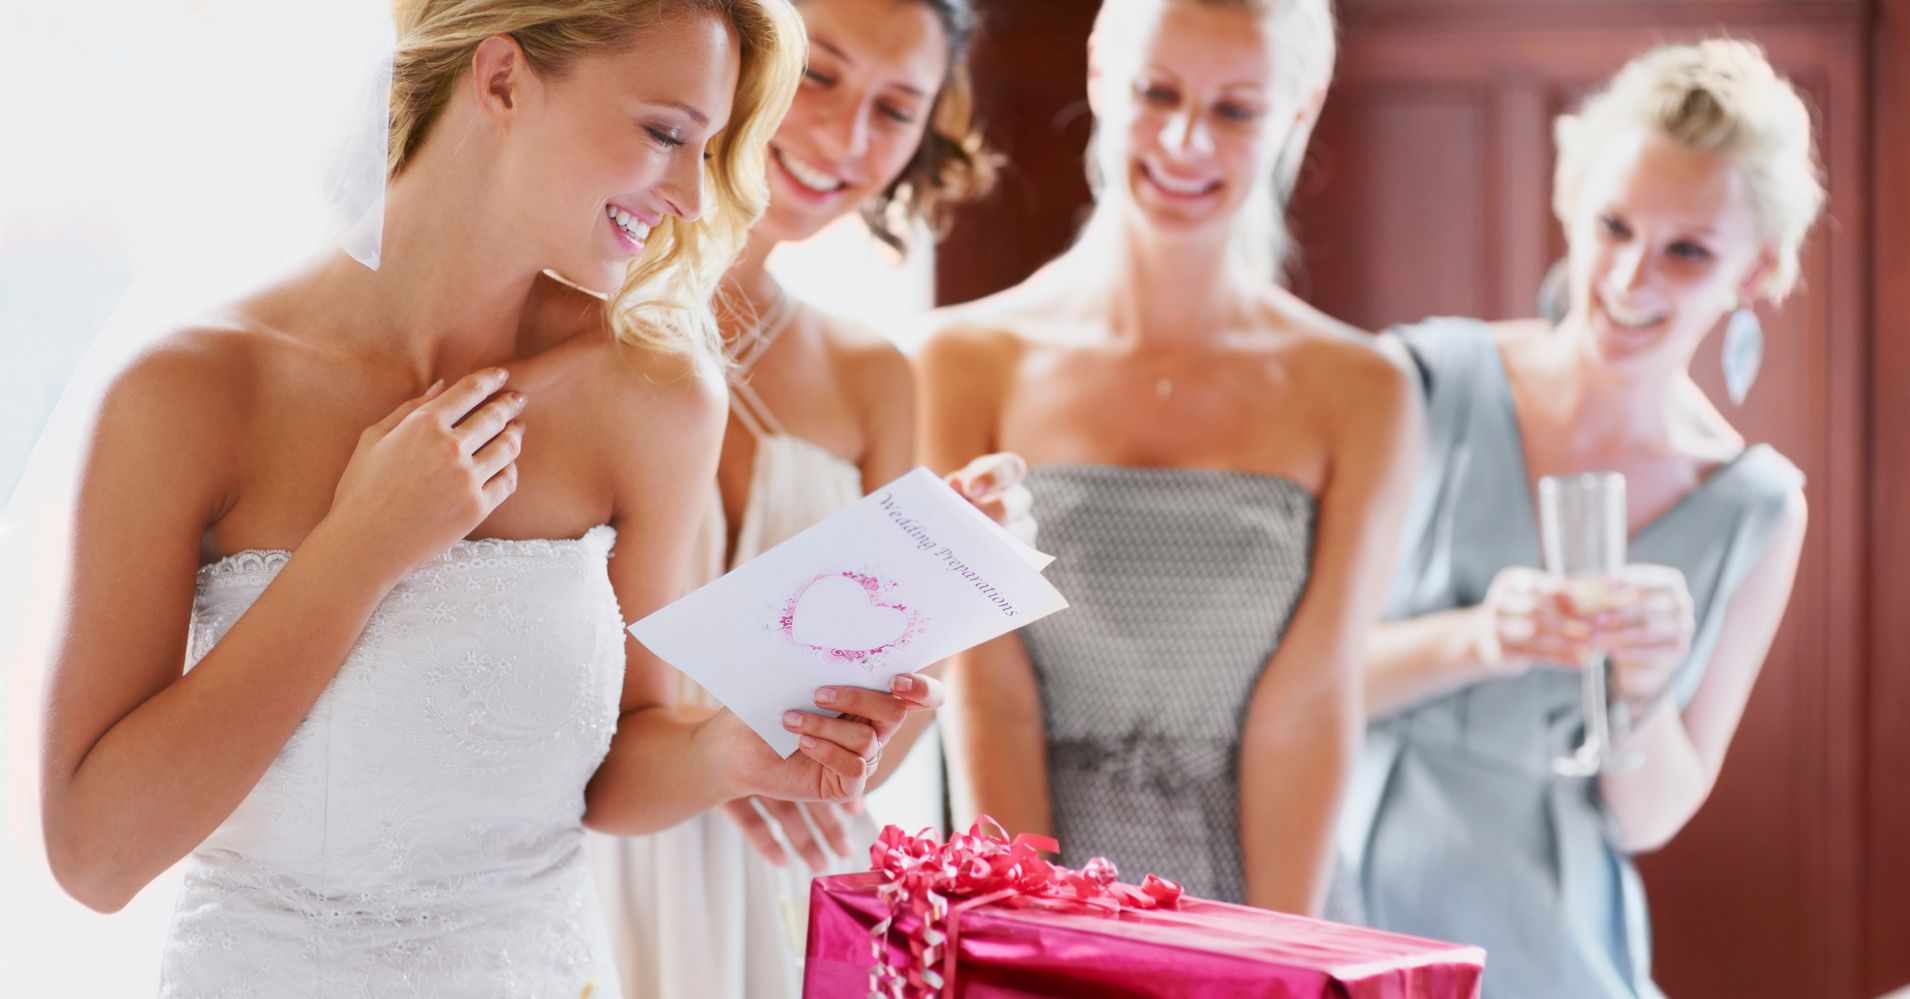 Exactly How Much Money To Give As A Wedding Gift Here Are 11 Factors To Help You Decide